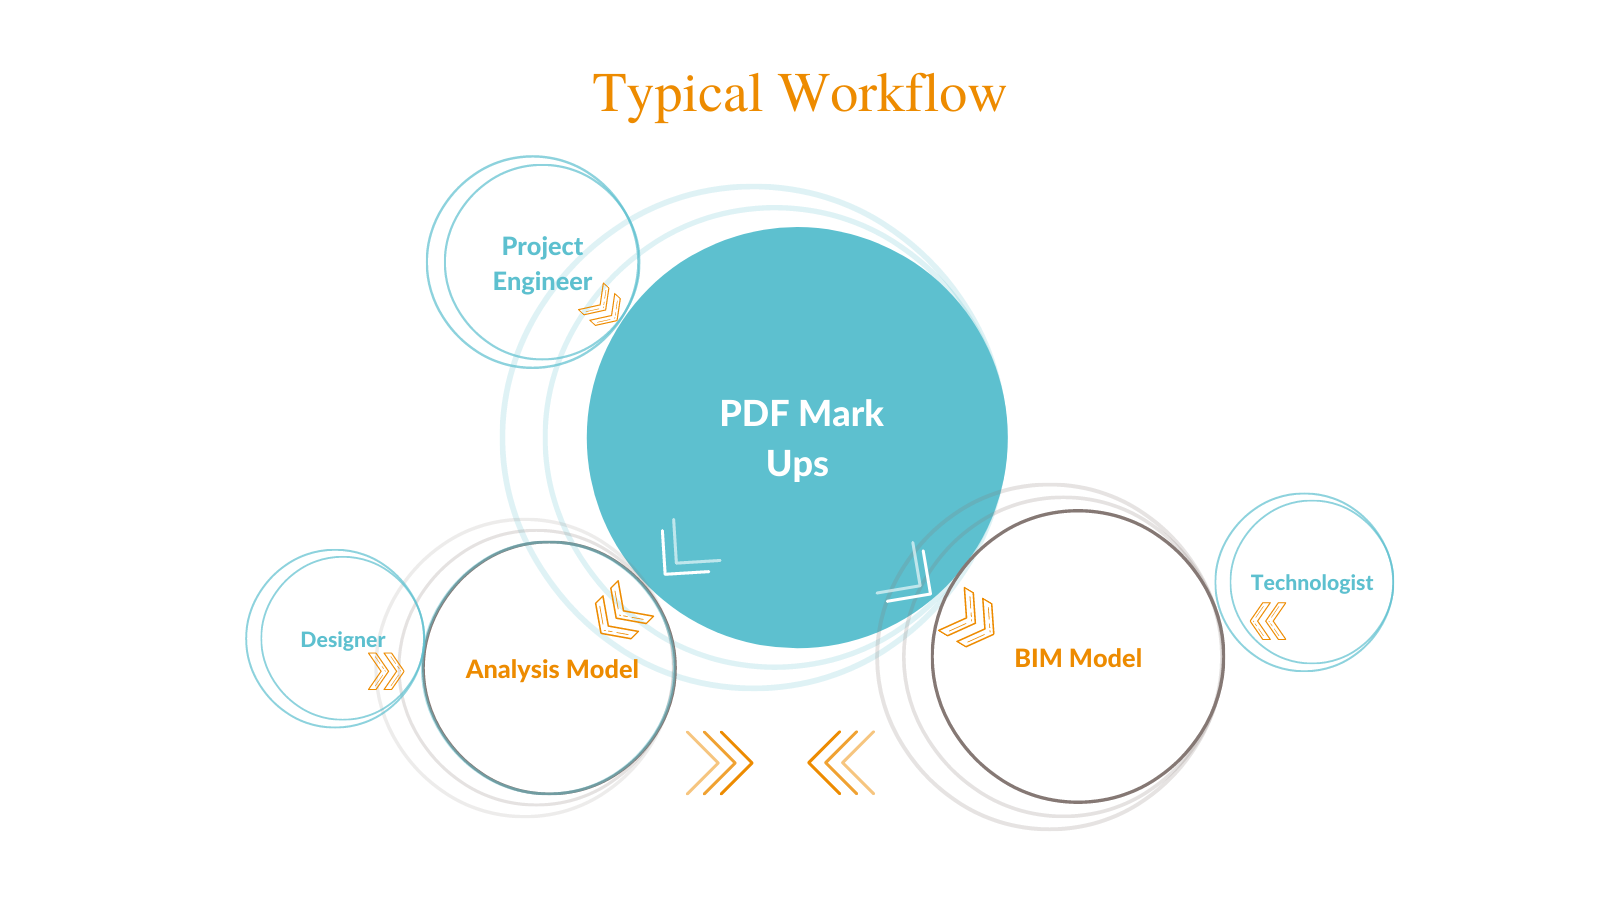 Graphic image of typical workflow. Project engineer designs mark ups in PDF; designer develops an analysis model; technologist creates a BIM model in Revit.